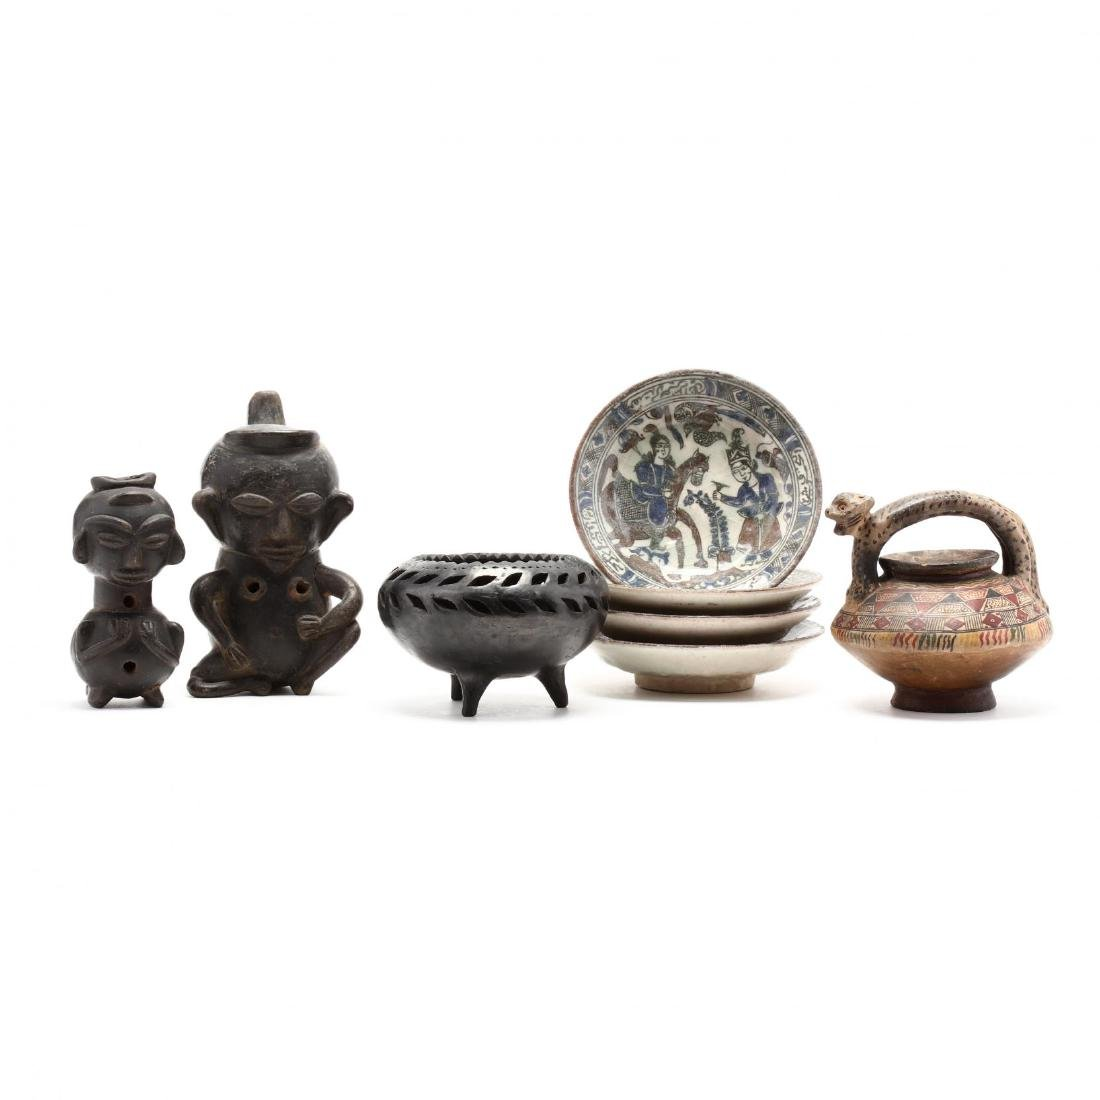 Ethnic Pottery Grouping